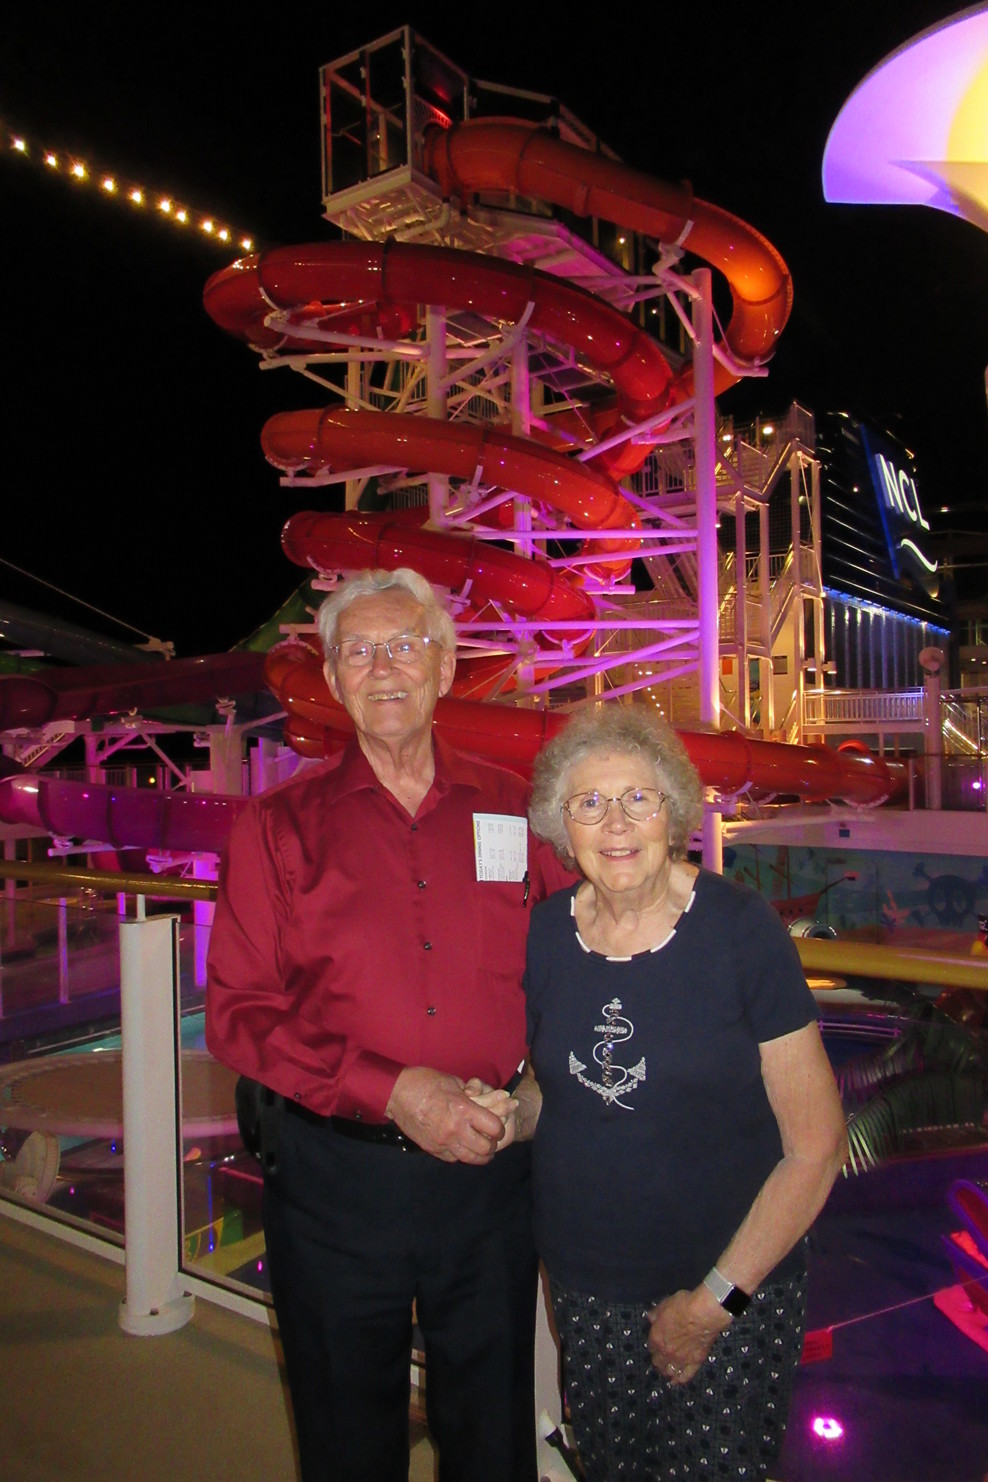 My parents on deck 16 with water slides behind them.